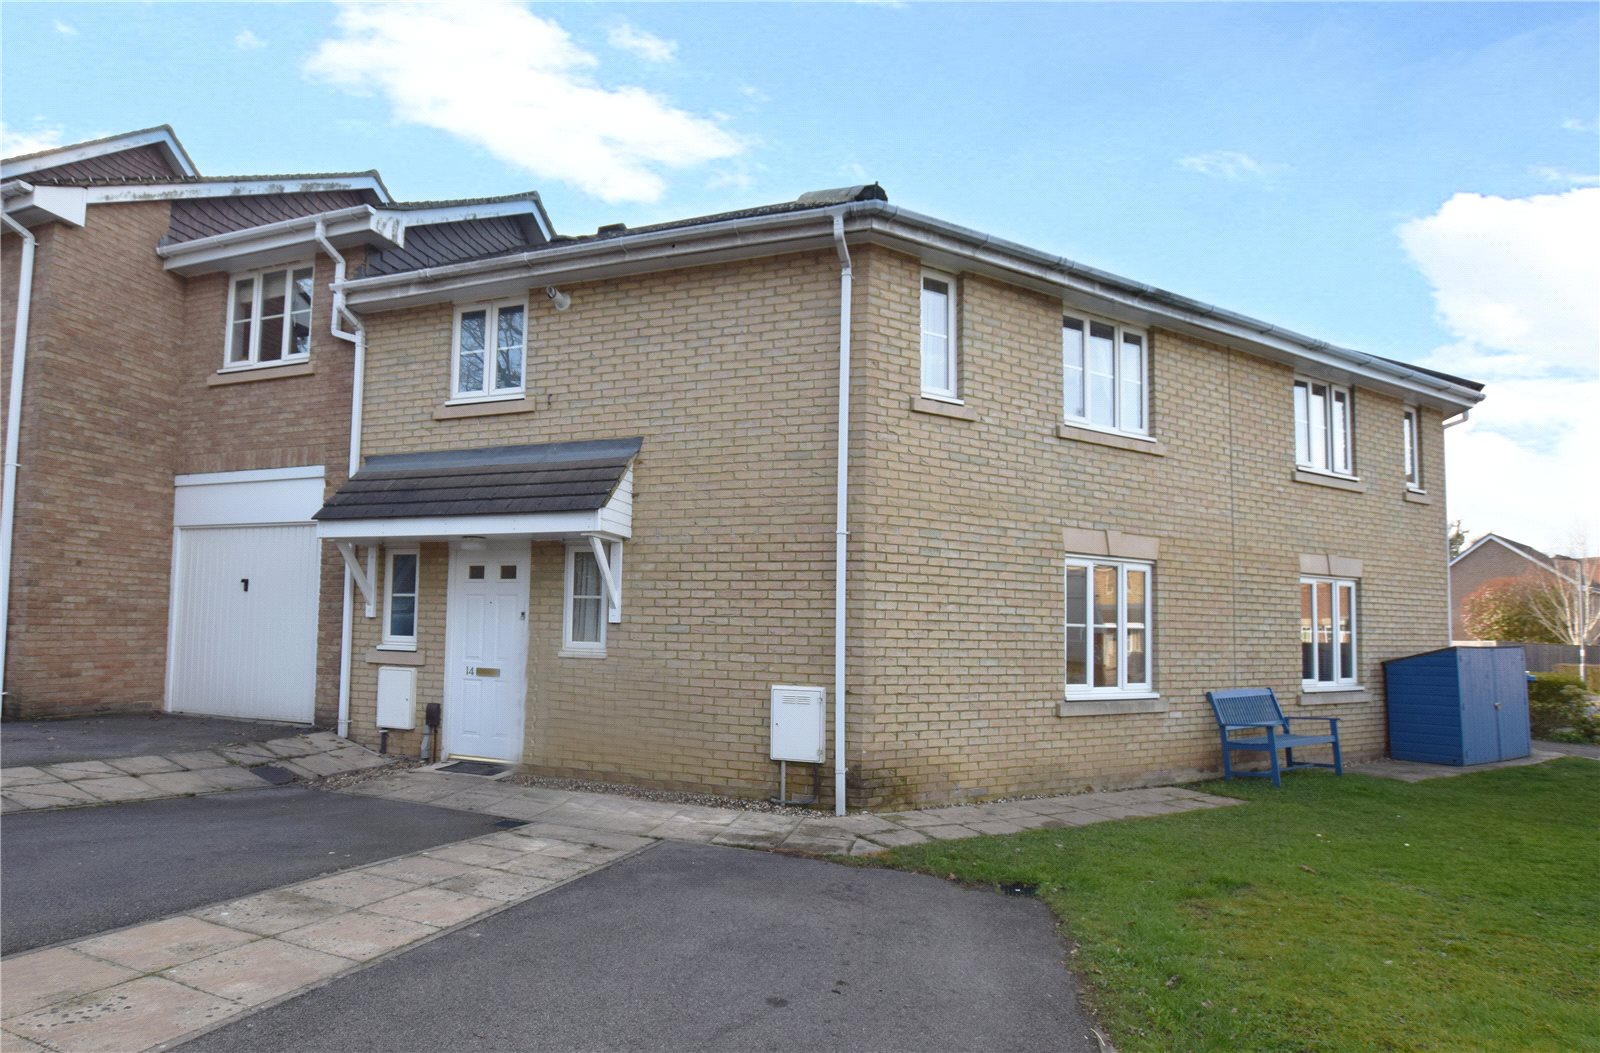 3 Bedrooms End Of Terrace House for sale in Goddard Way, Warfield, Berkshire, RG42